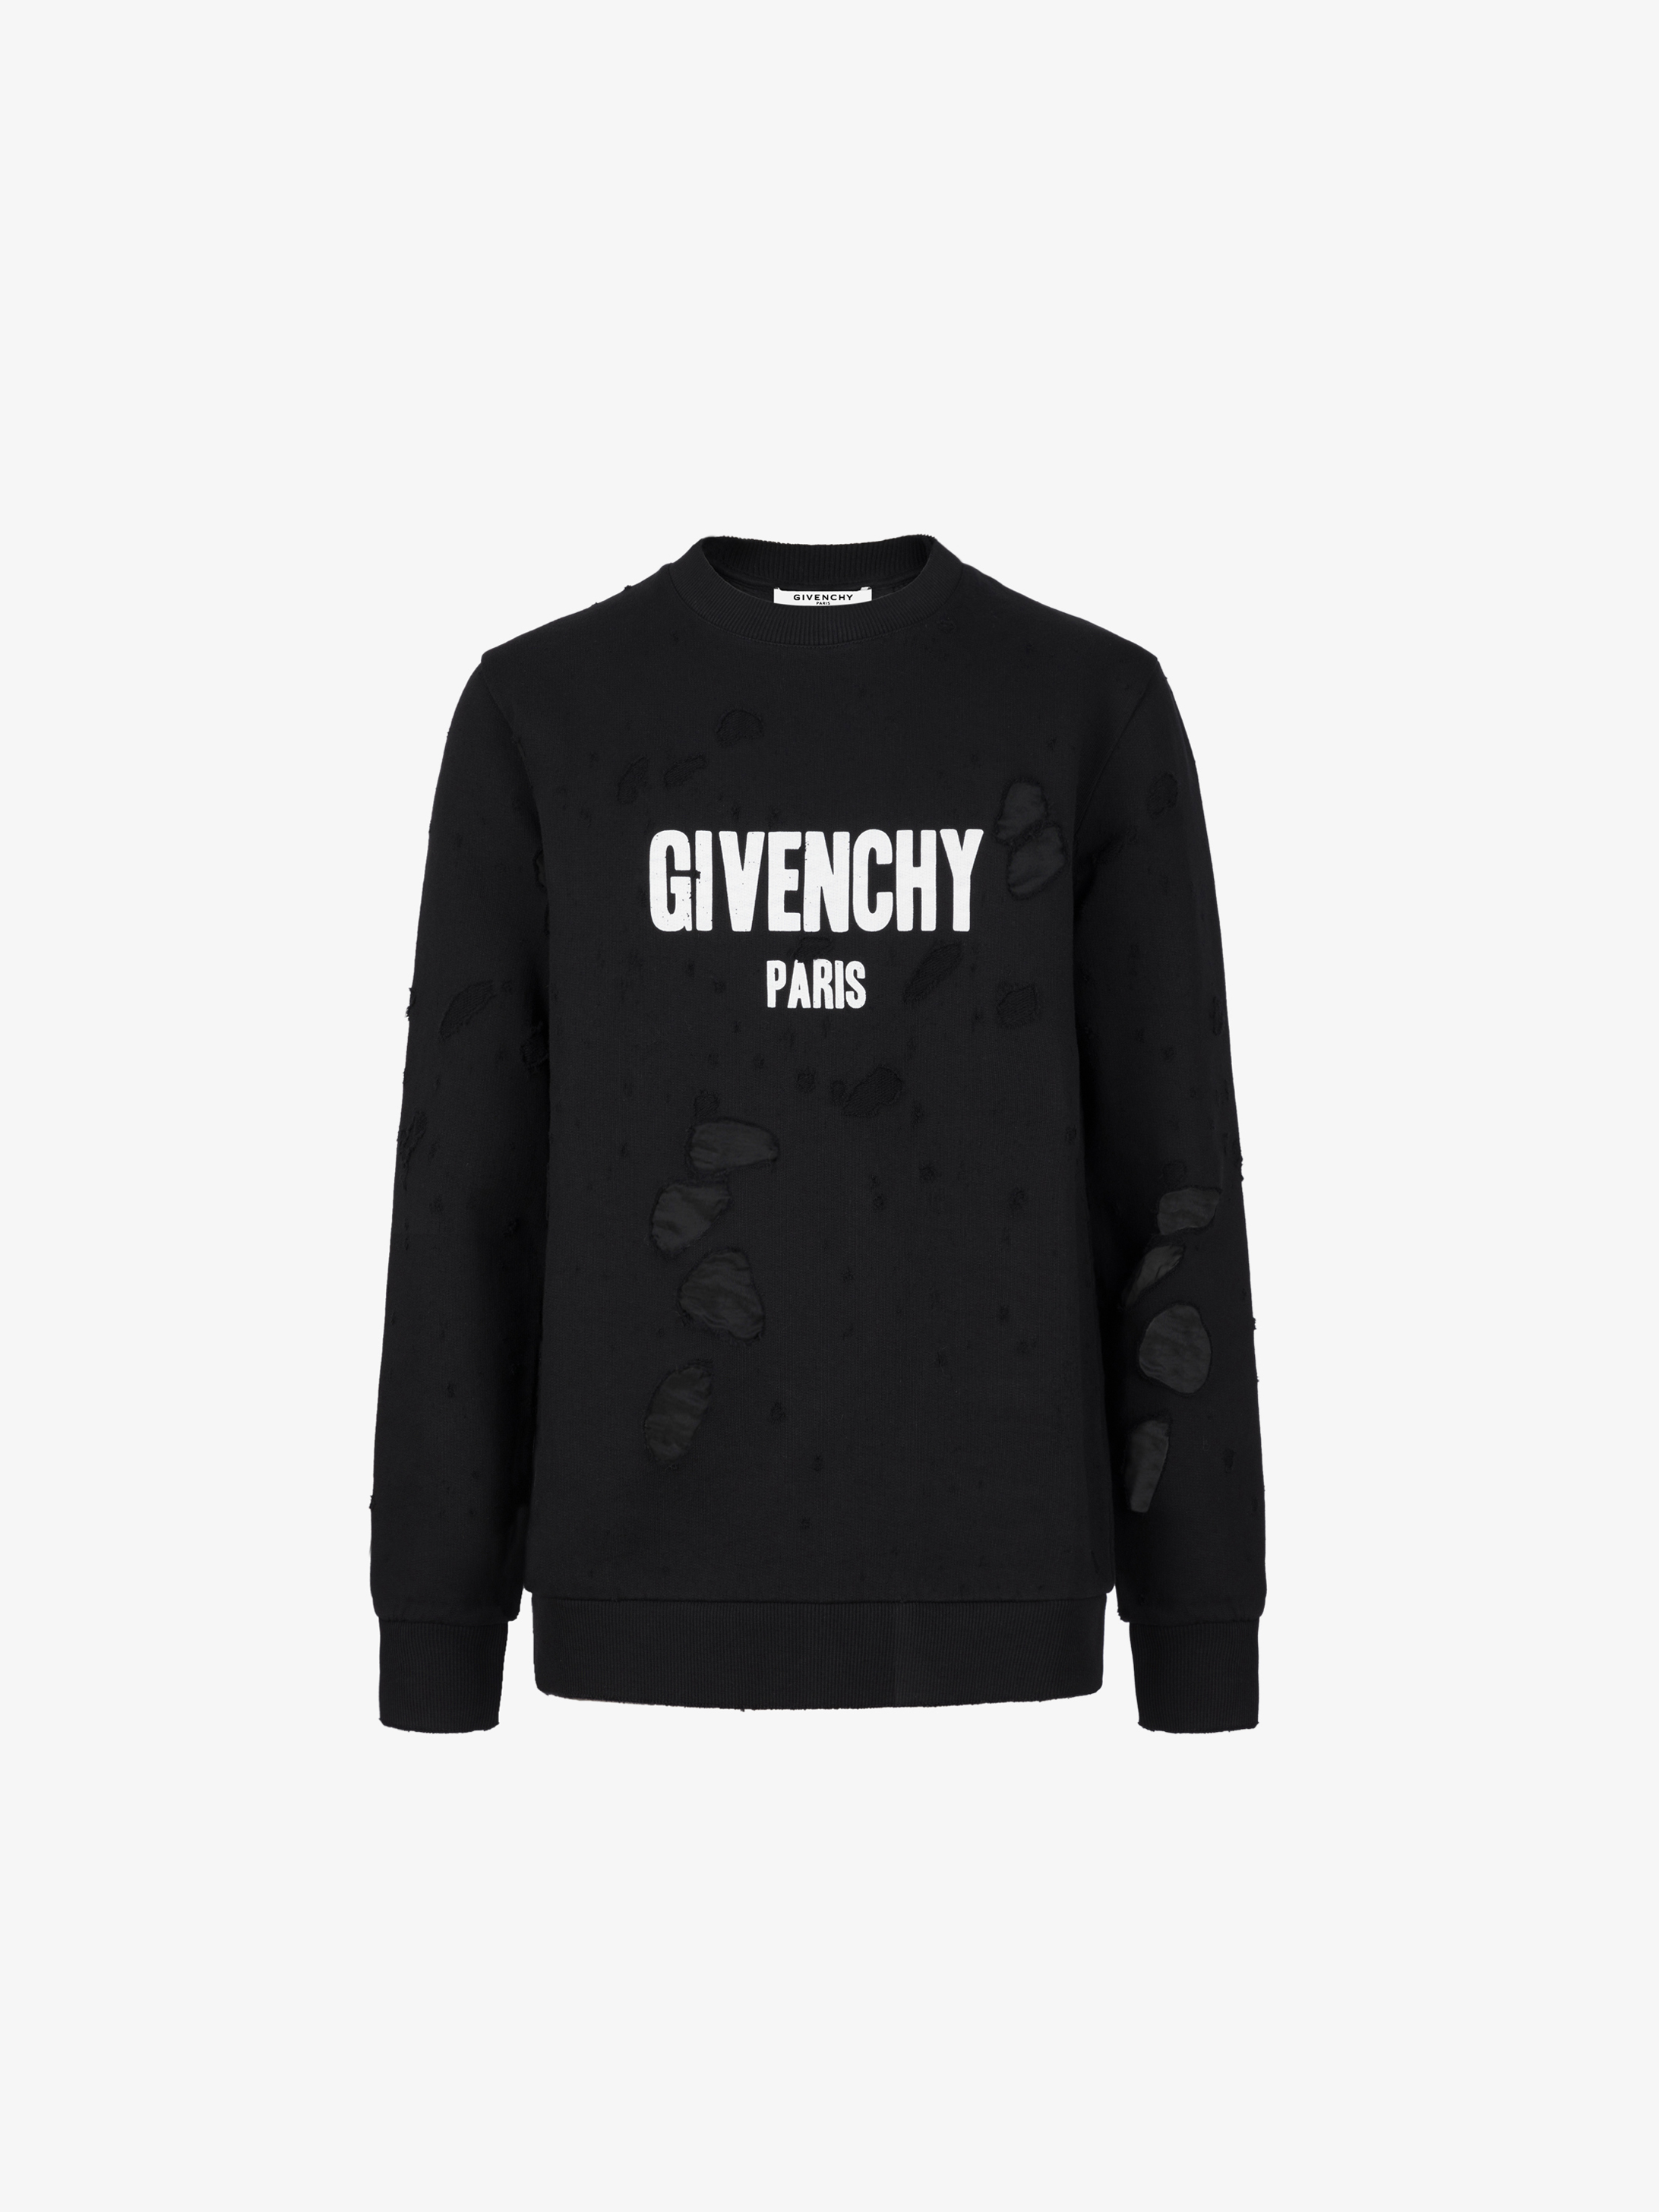 GIVENCHY PARIS destroyed sweatshirt